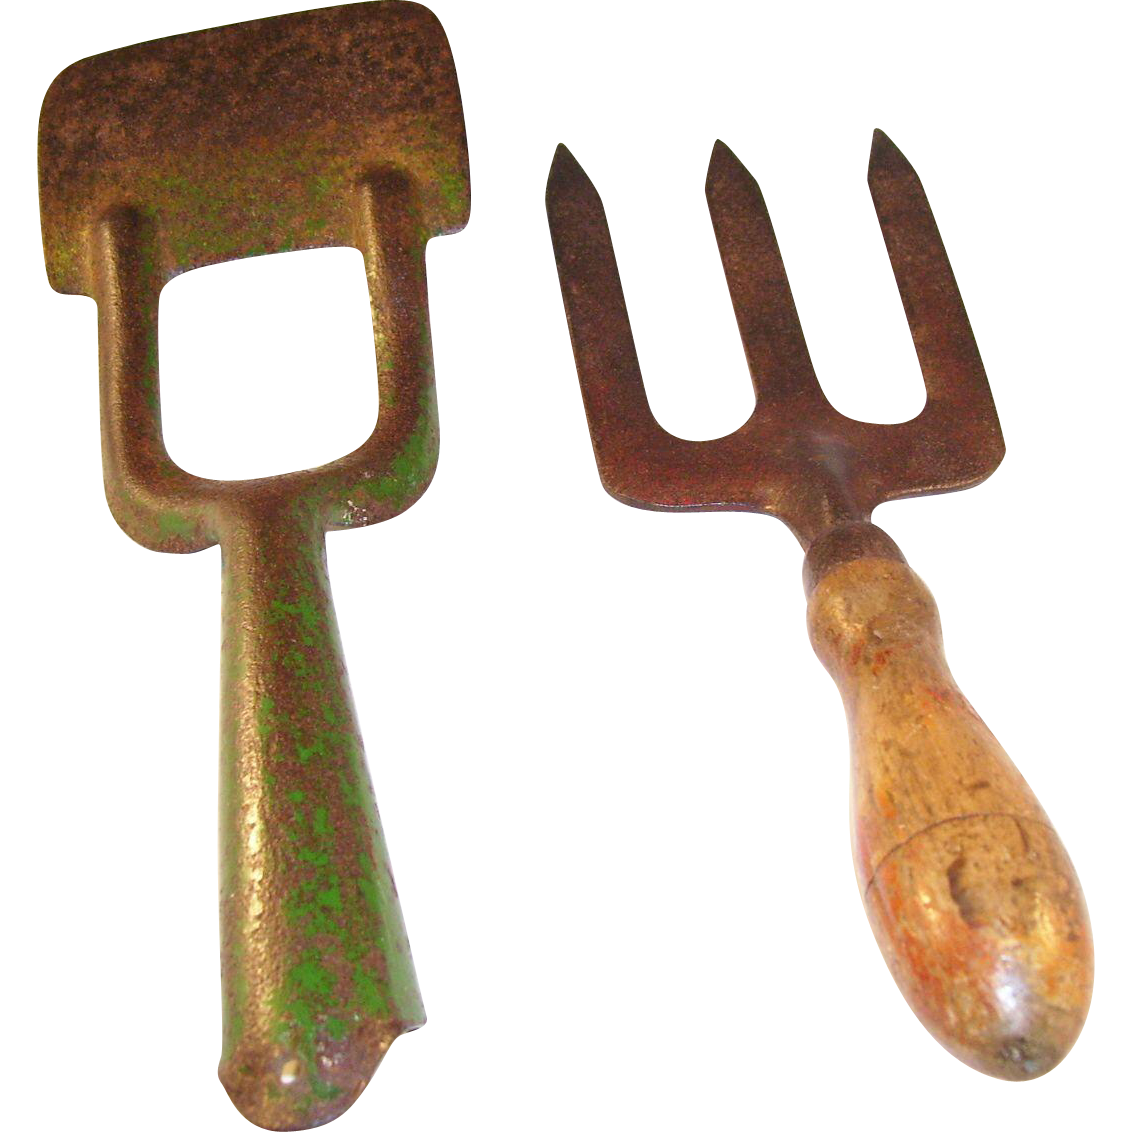 Pair of Vintage English Gardening Tools - Spade & Trowel